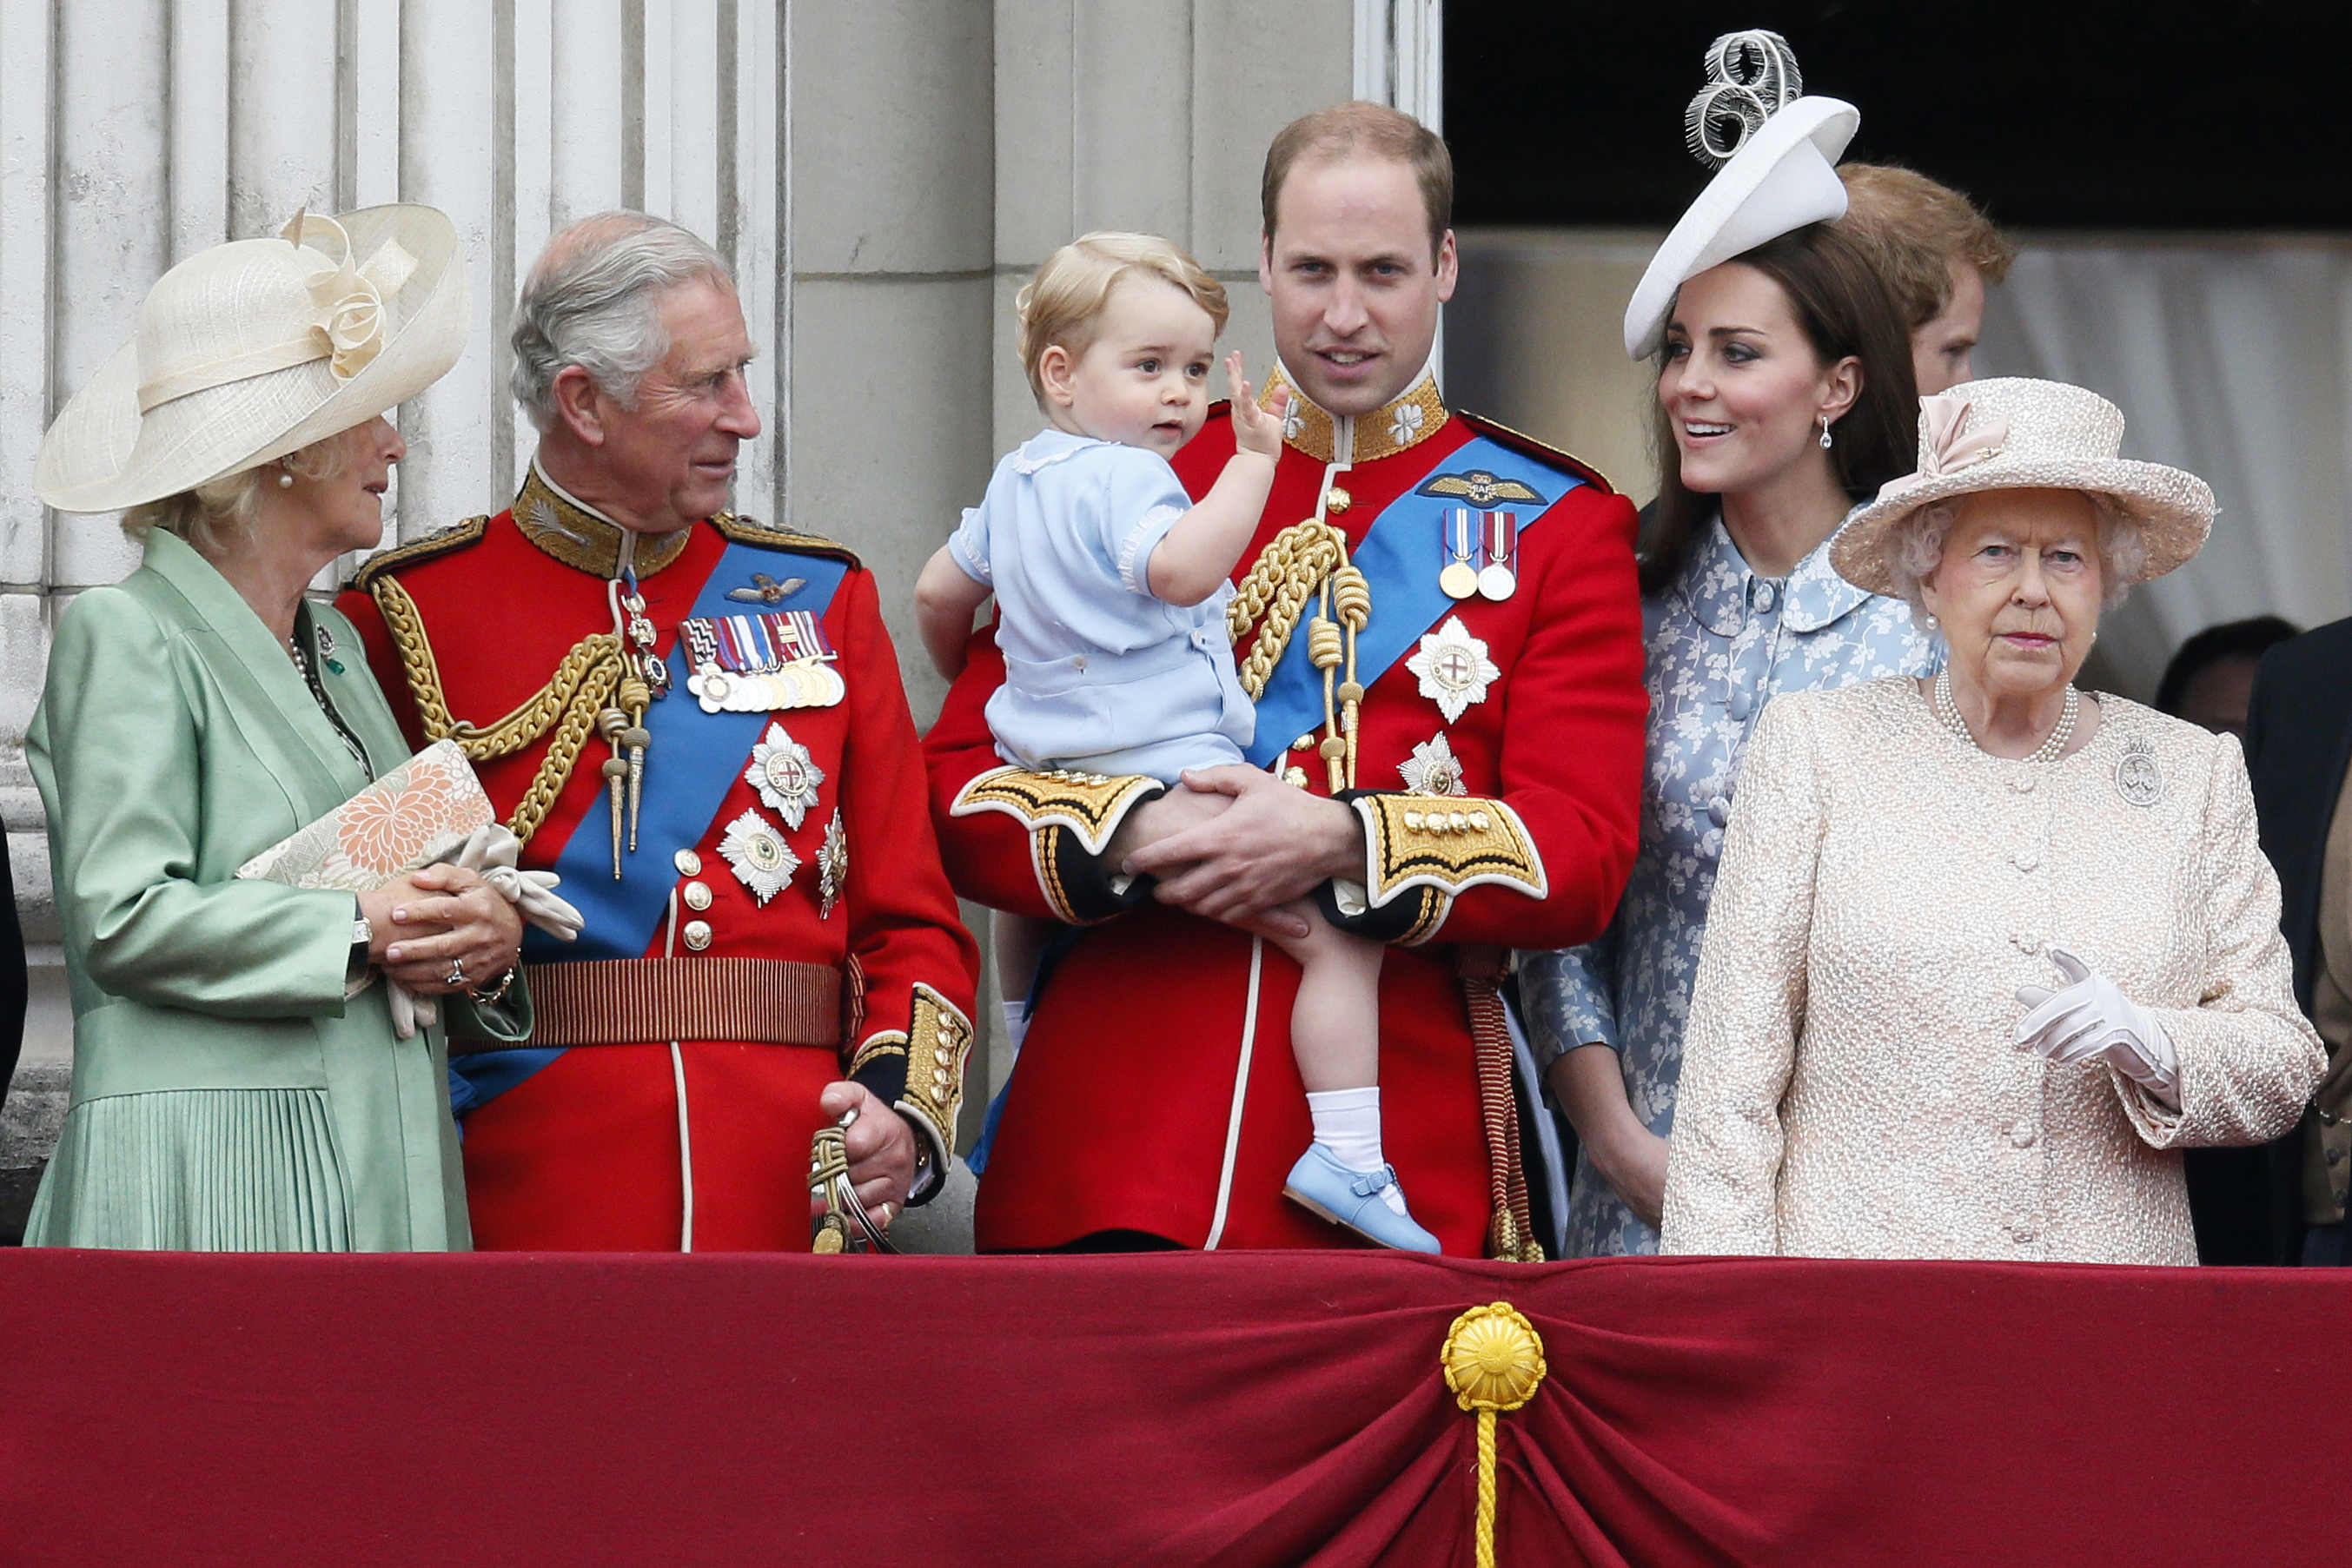 Britain's Camilla the Duchess of Cornwall, Prince Charles, Prince Willian holding Prince George, Catherine, the Duchess of Cambridge and Queen Elizabeth stand on the balcony at Buckingham Palace after attending the Trooping the Colour ceremony in London, June 13, 2015.